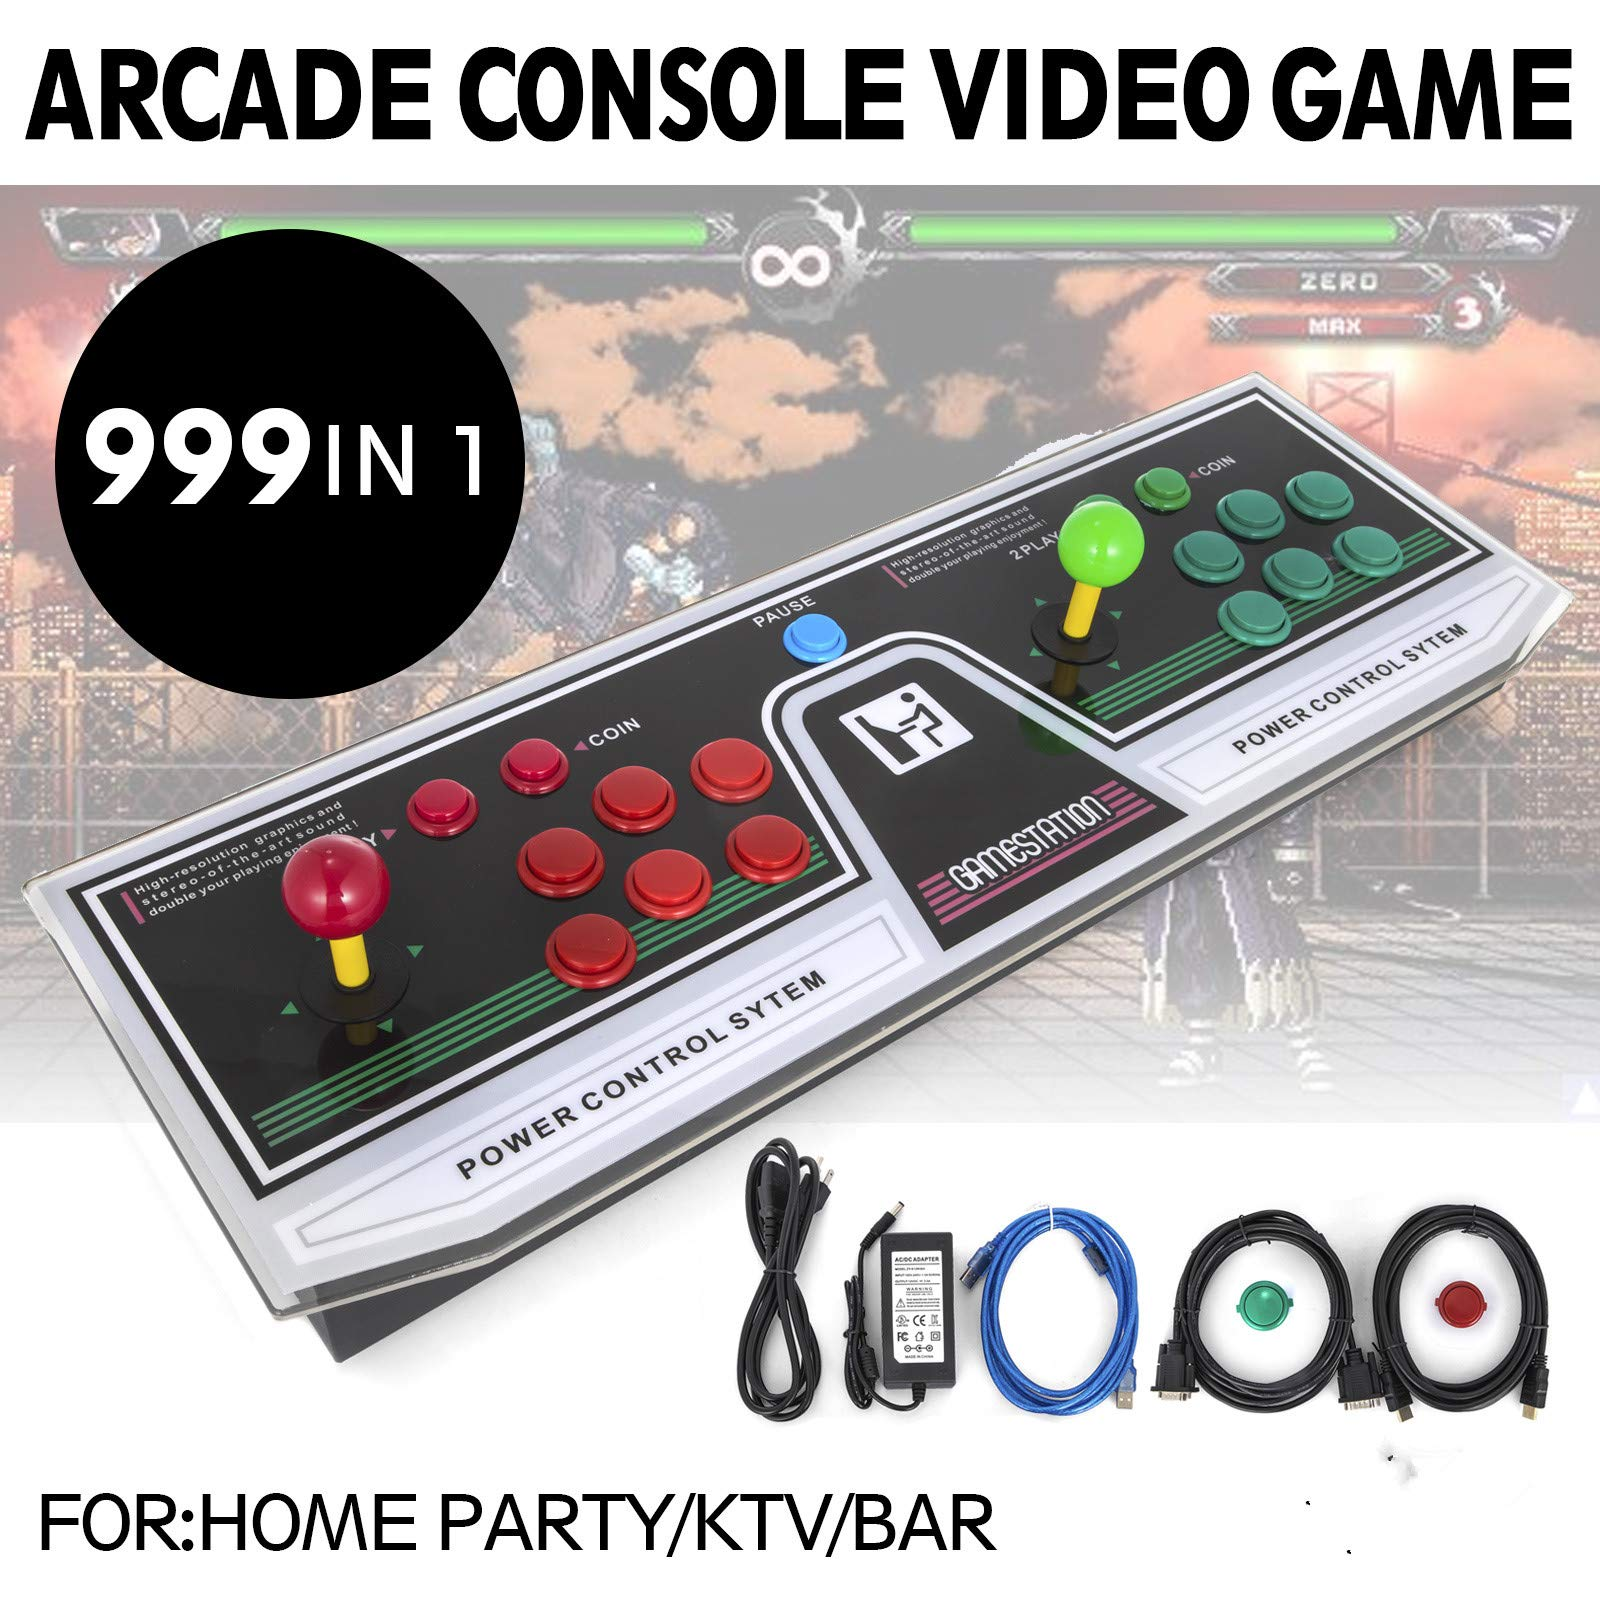 Happybuy Arcade Game Console 1280P Games 1500 in 1 Pandora's Box 2 Players Arcade Machine with Arcade Joystick Support Expand Games for PC / Laptop / TV / PS4 by Happybuy (Image #1)